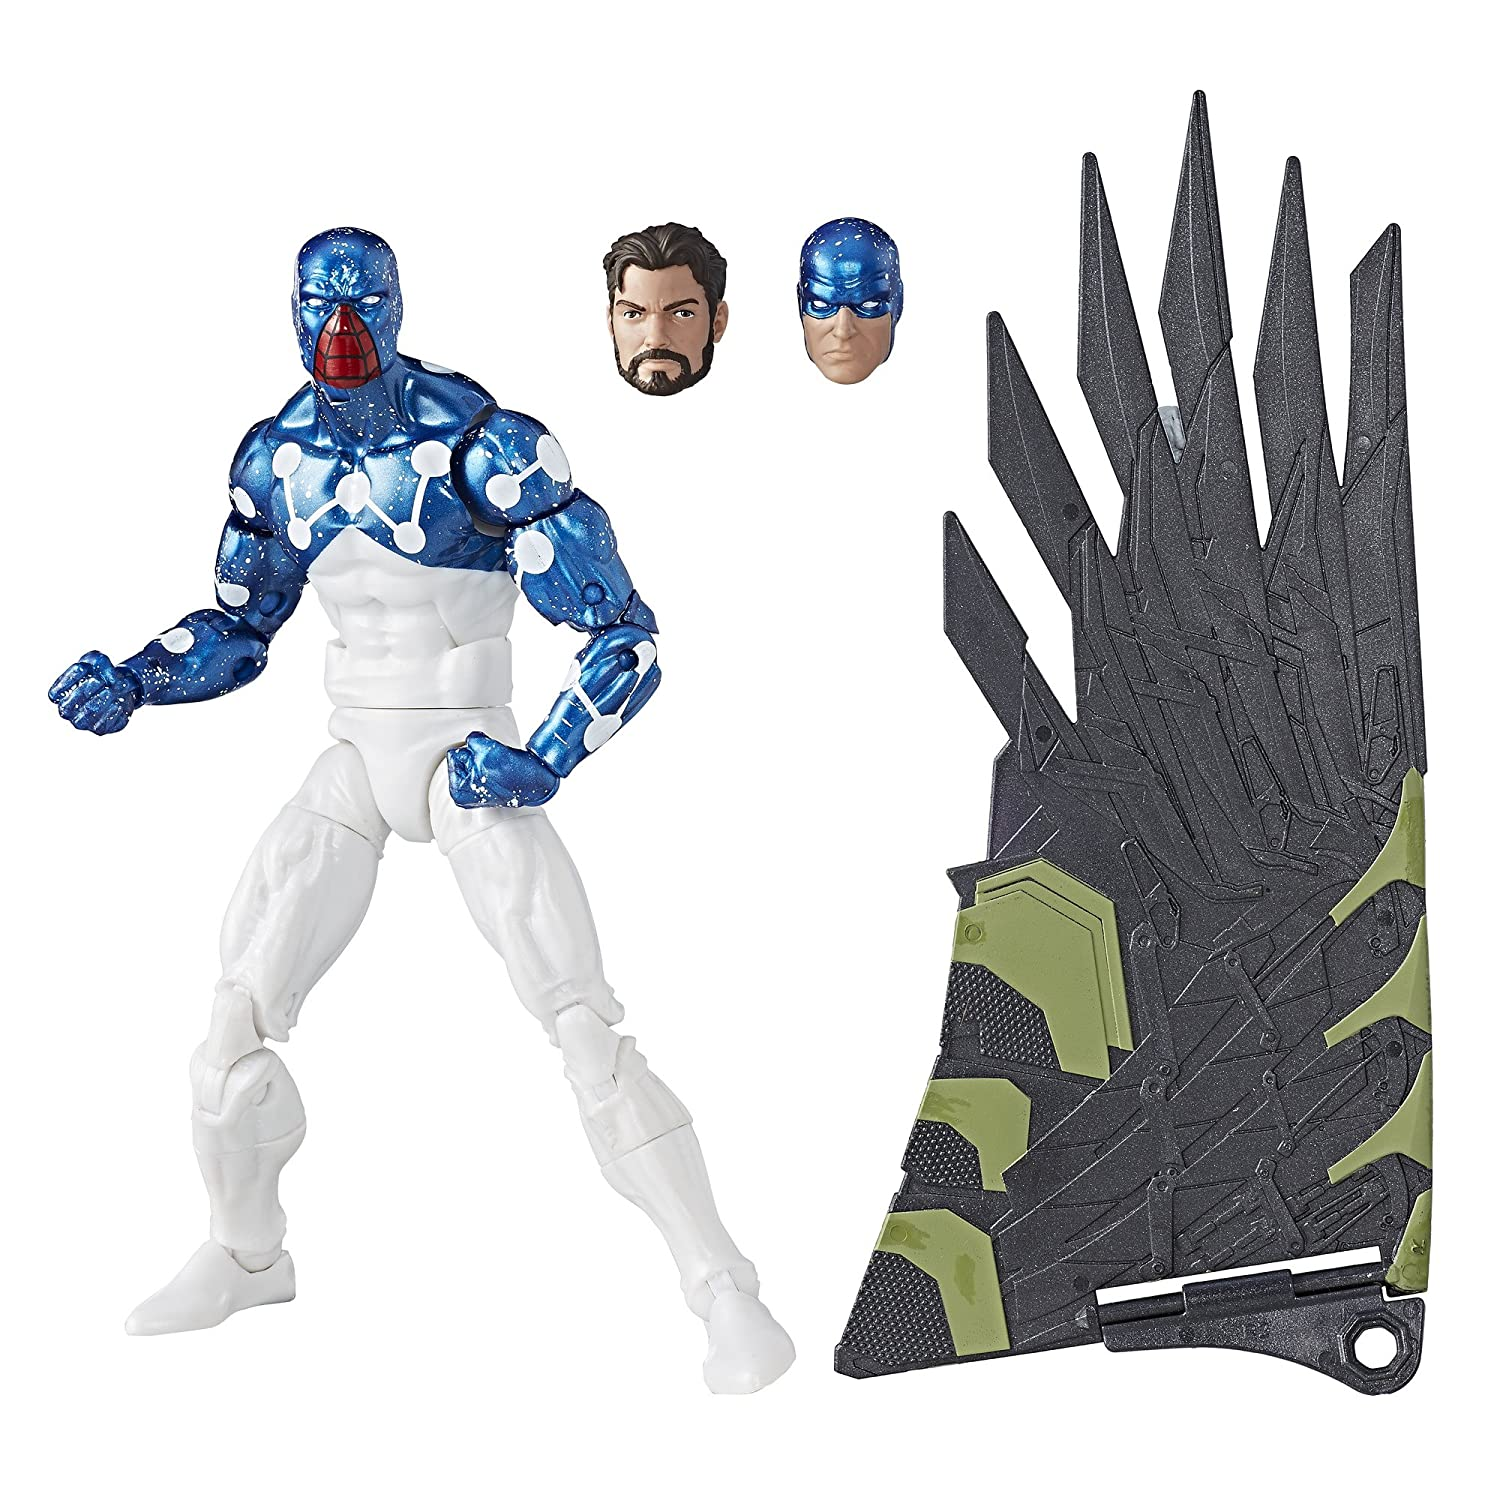 Marvel Legends Spider-Man Cosmic Spider Man Action Figure (Build Vulture's Flight Gear), 6 Inches Hasbro A6655